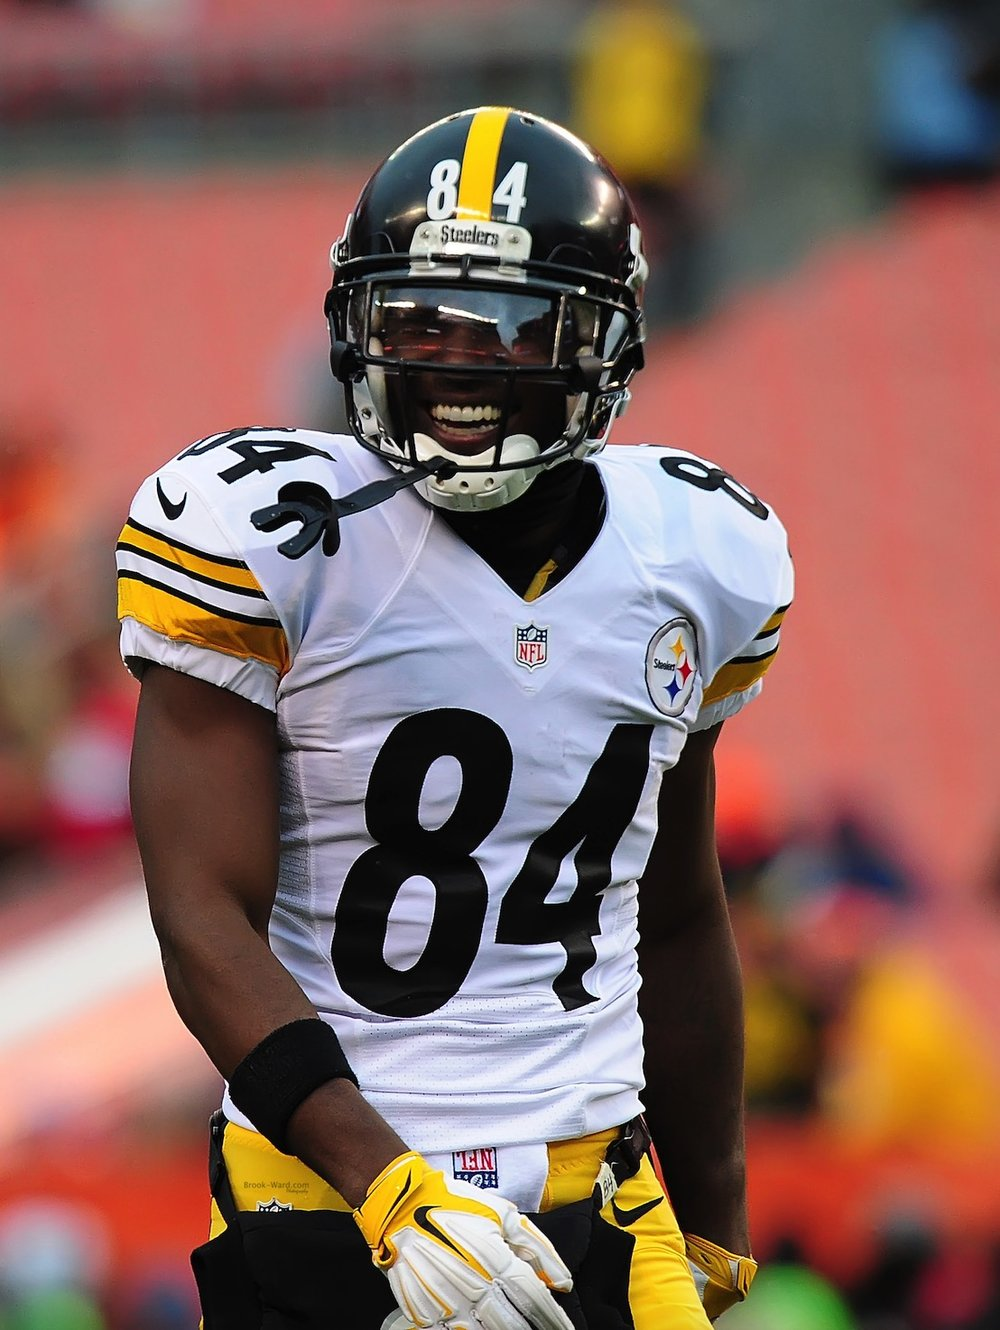 Smiling Antonio Brown